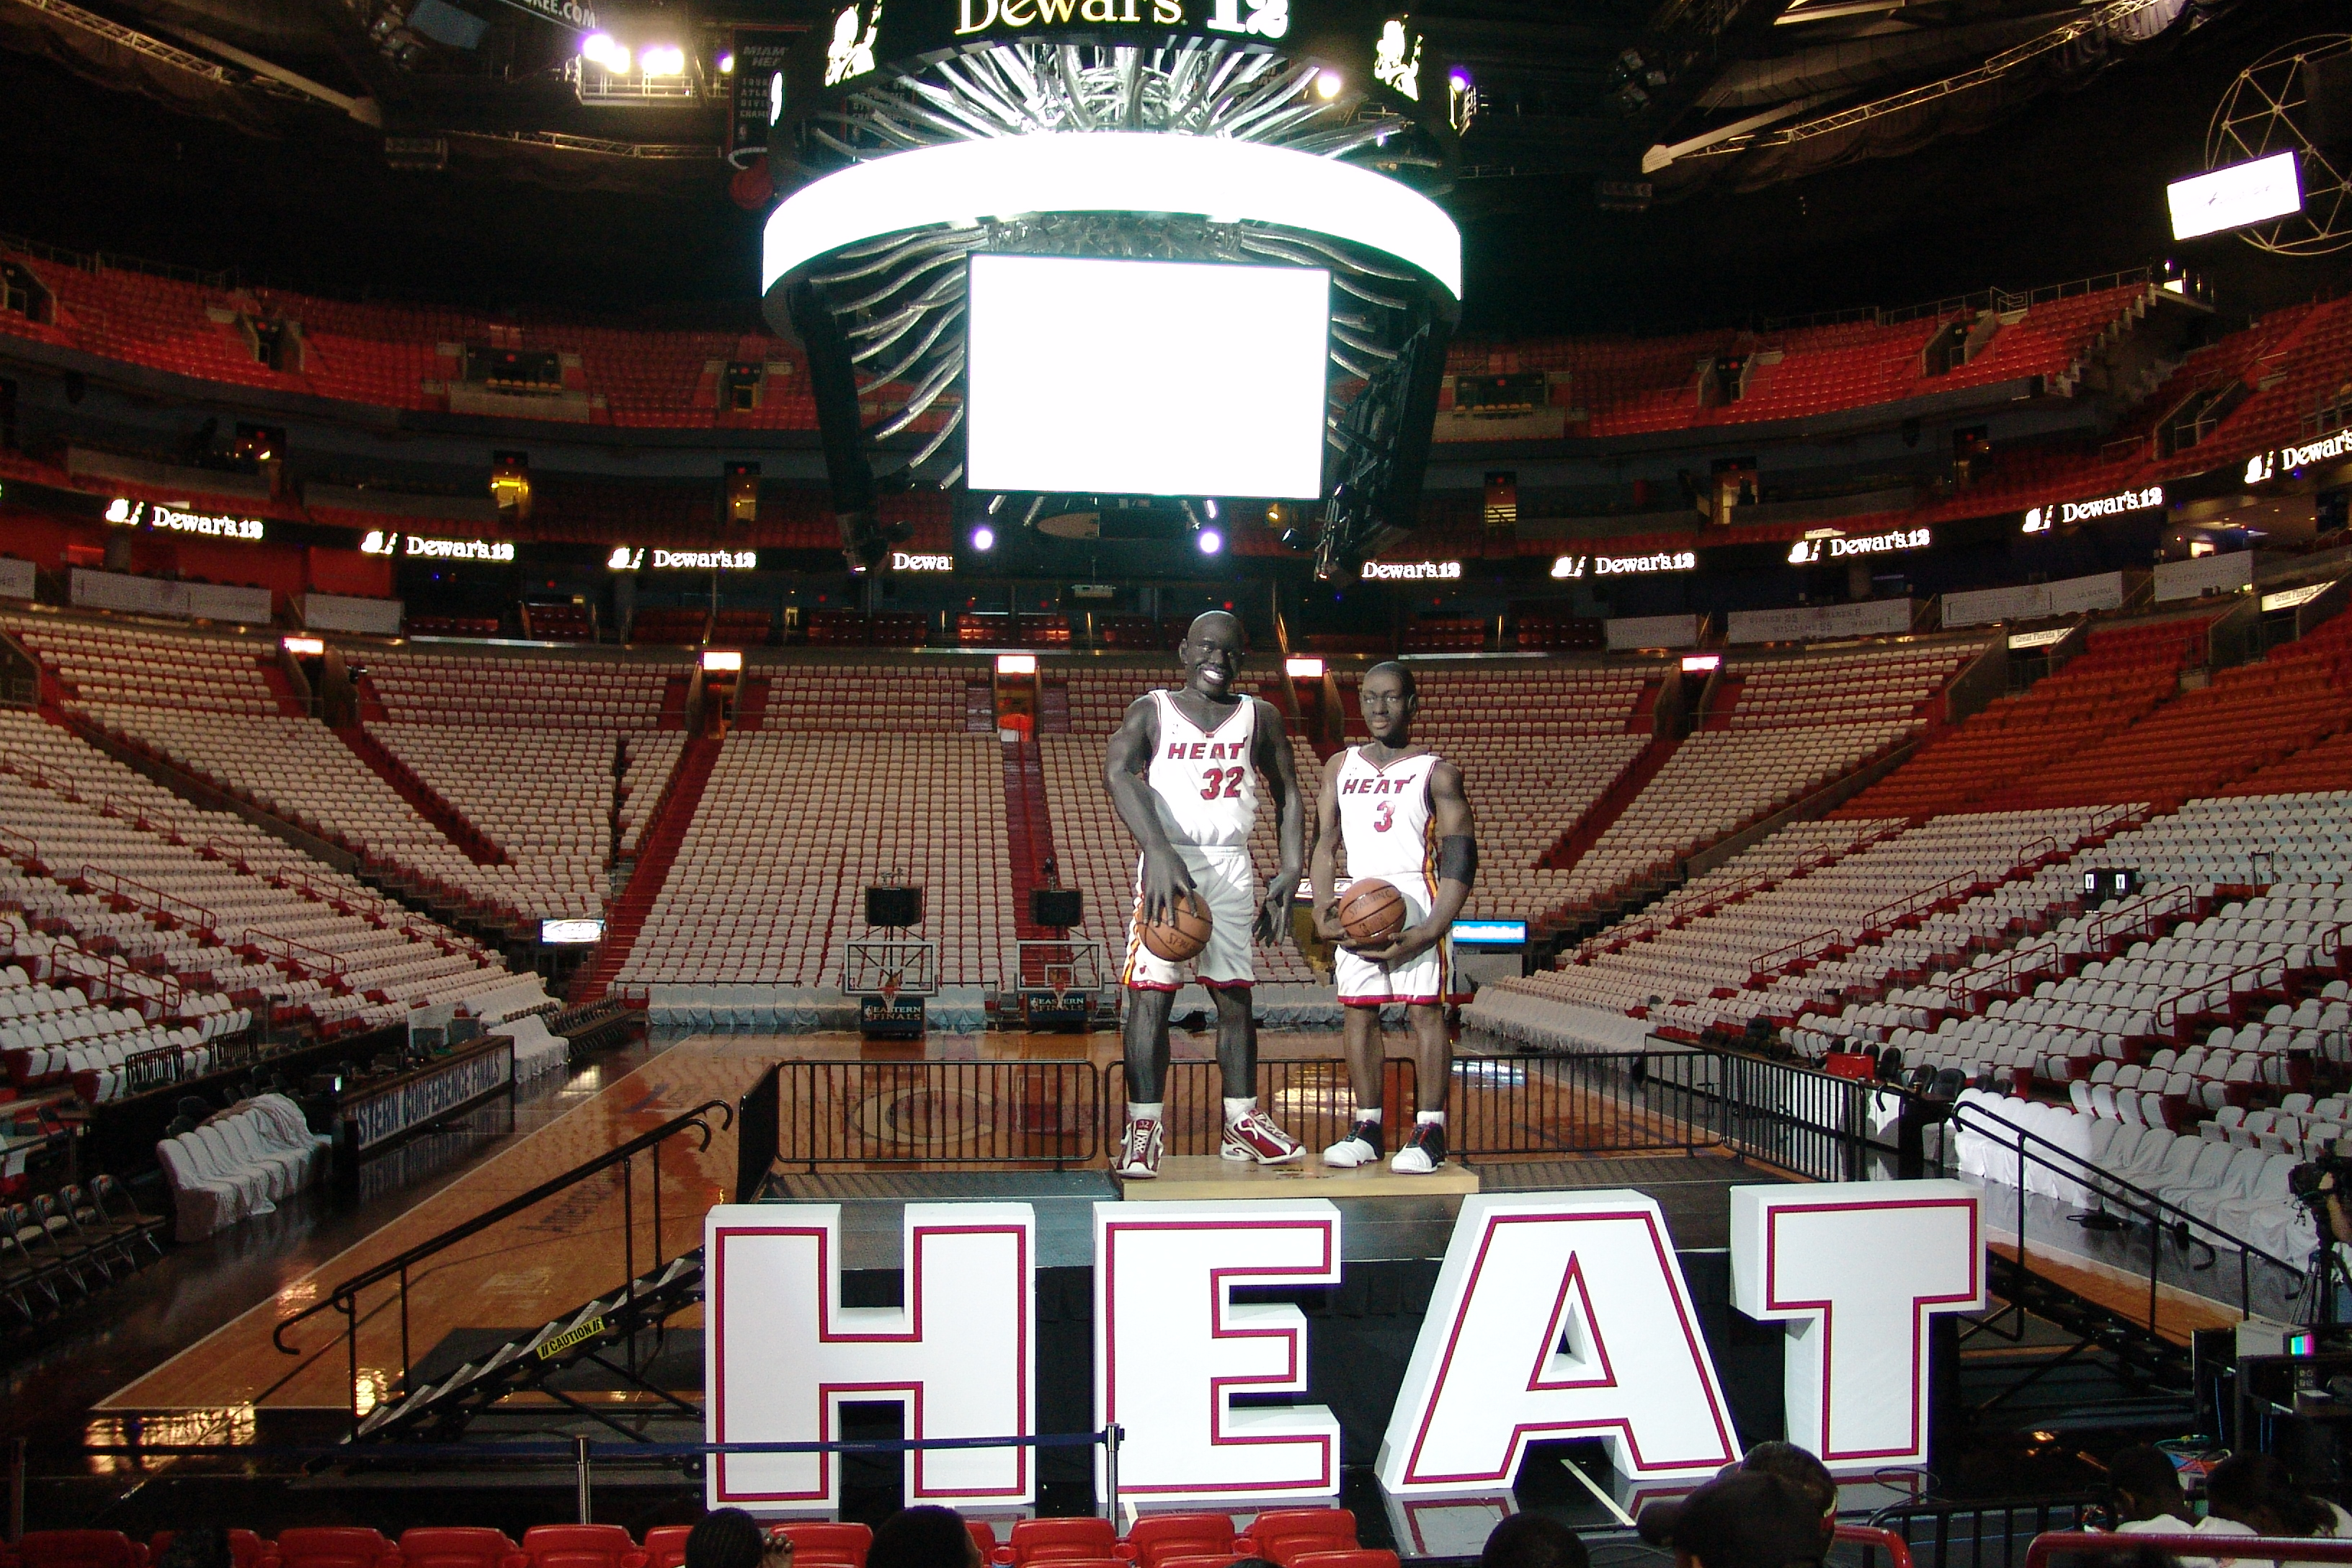 Miami Heat Giant Letters